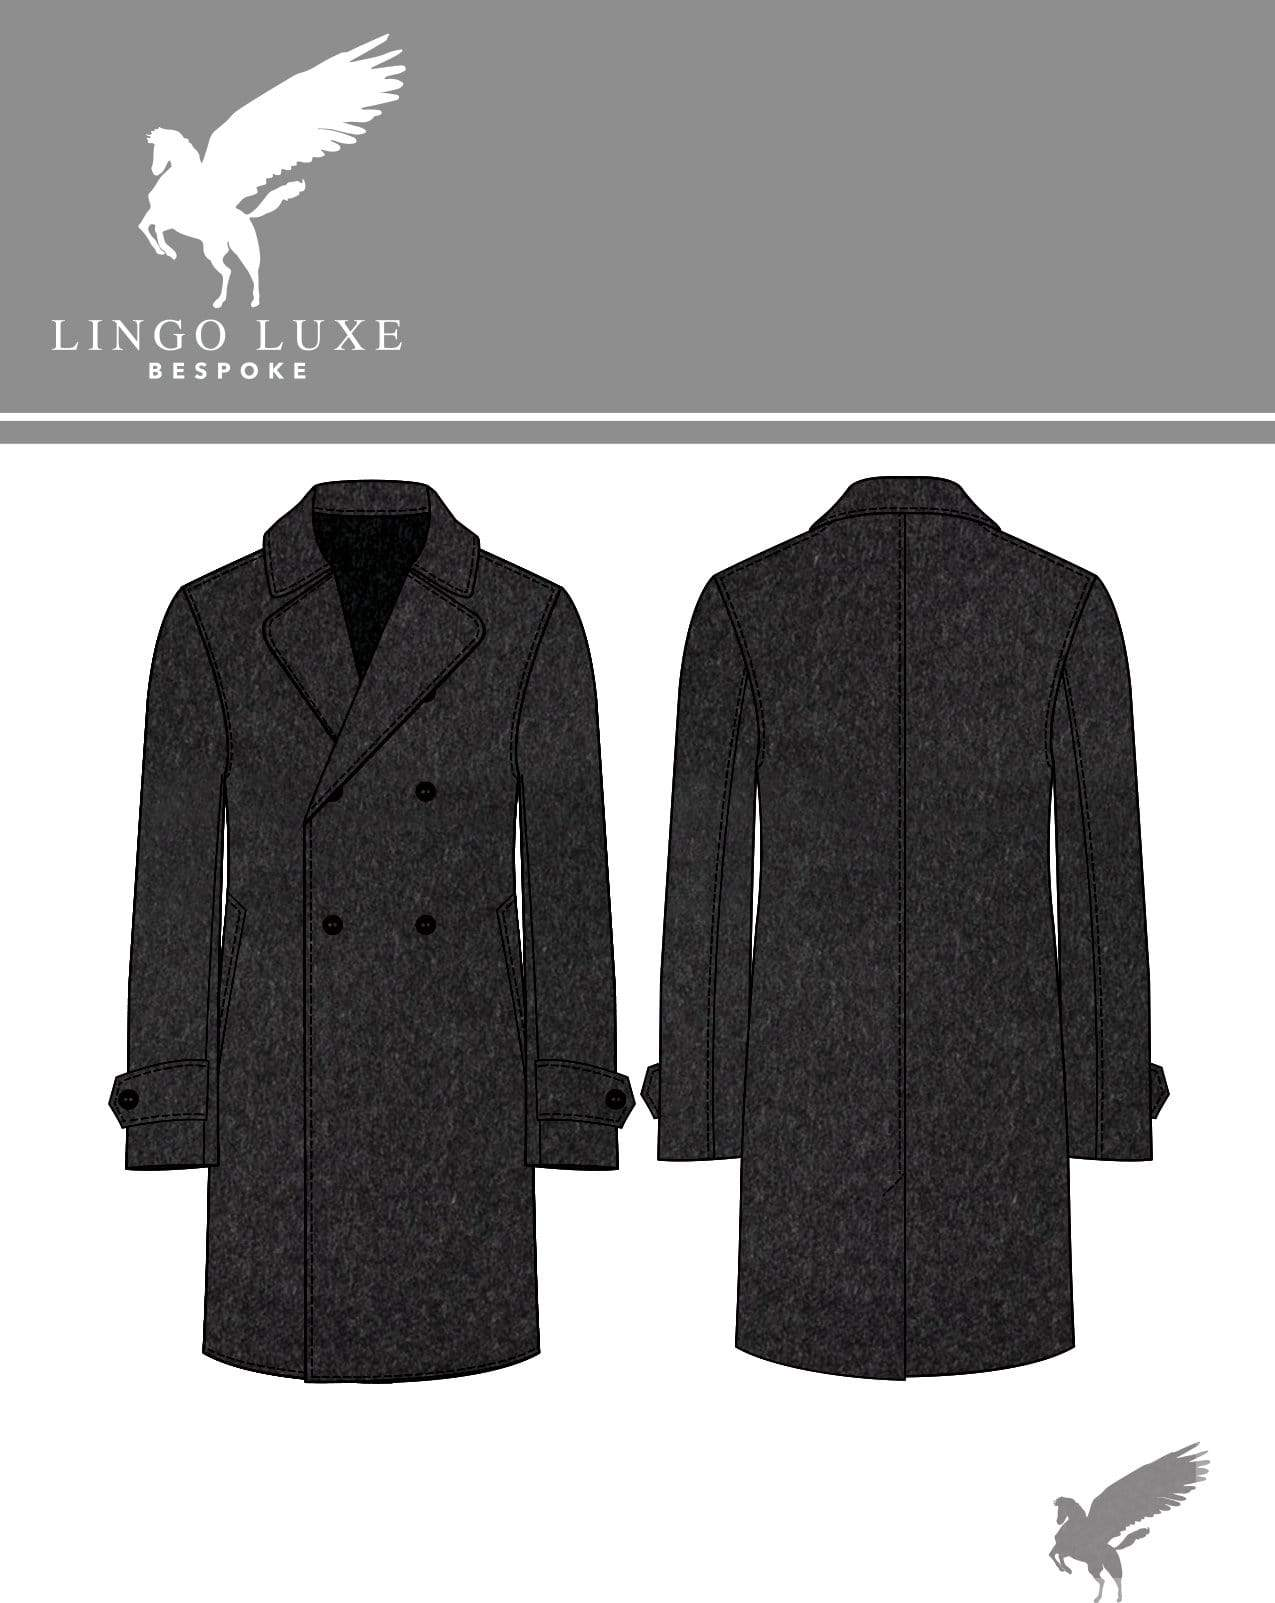 Outerwear | Lingo Luxe The Stately Overcoat | Sooty Coal-Lingo Luxe Bespoke